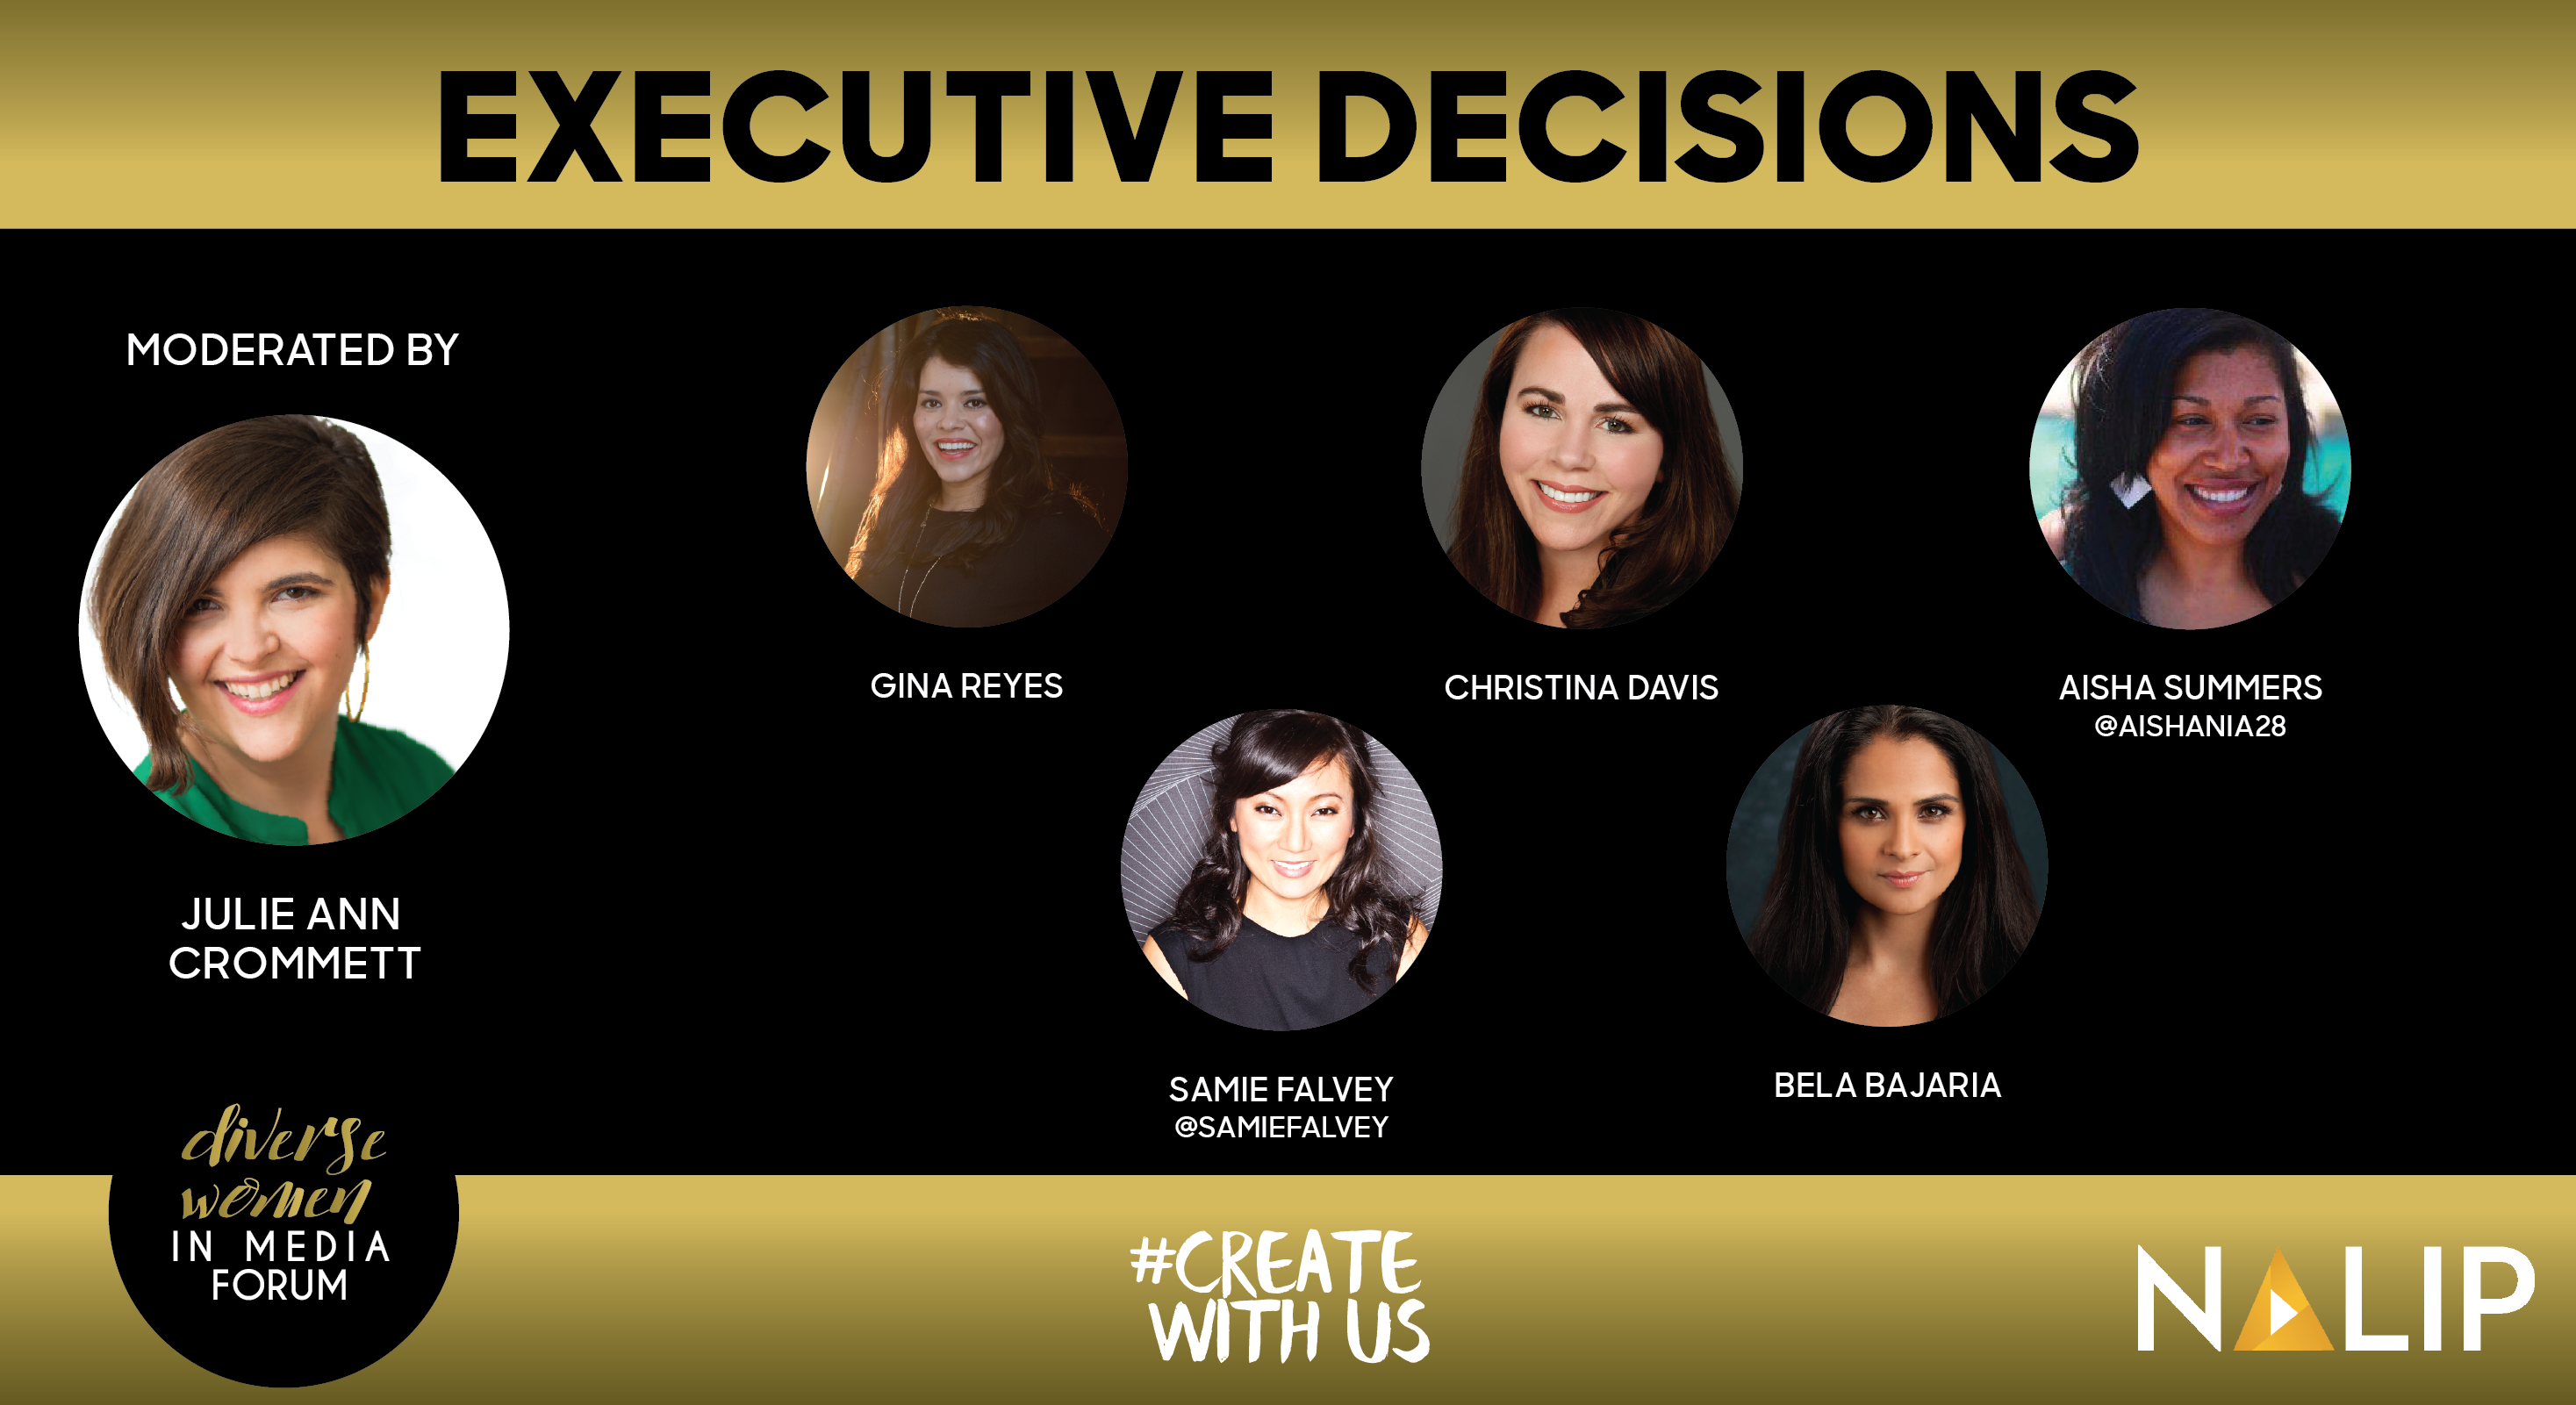 The Women Behind the 'Executive Decisions'